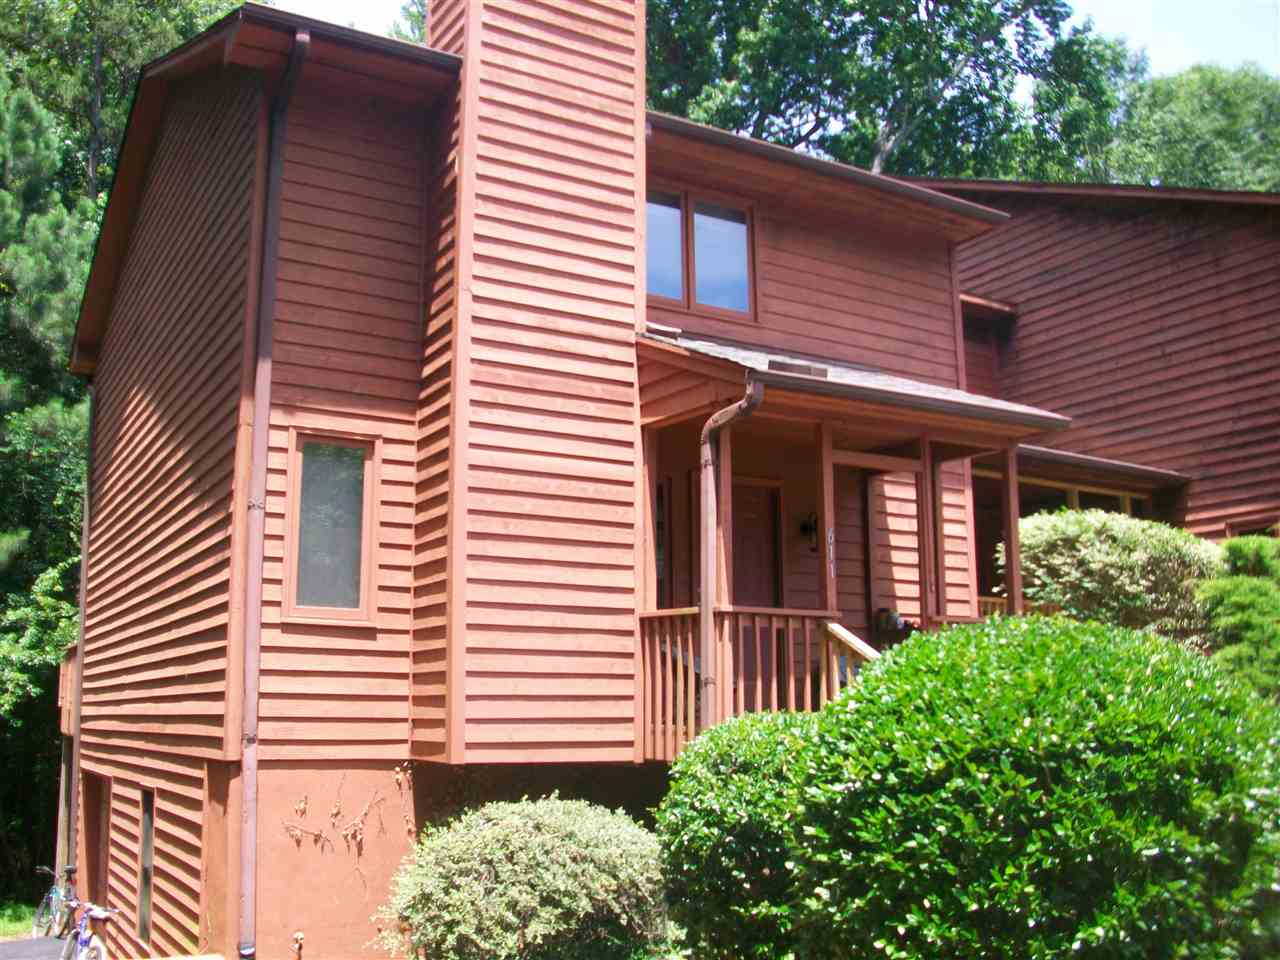 Rental Homes for Rent, ListingId:34075040, location: 600 Anderson Hwy #611 Clemson 29631